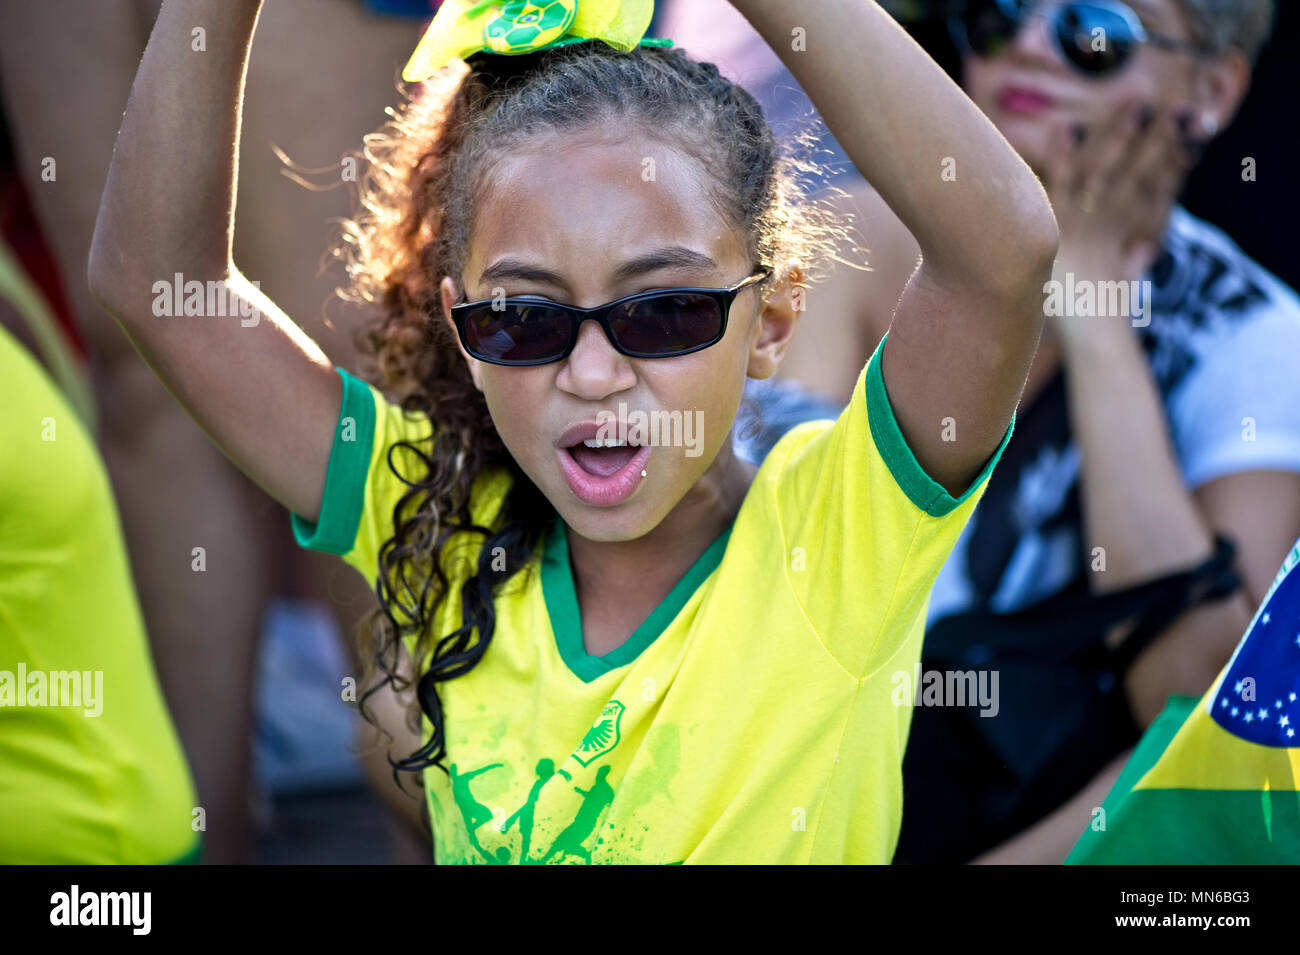 Copacabana beach, Rio de Janeiro - April 17, 2016: Demonstrators protest against corruption in Brazil and the government of President Dilma Rousseff - Stock Image